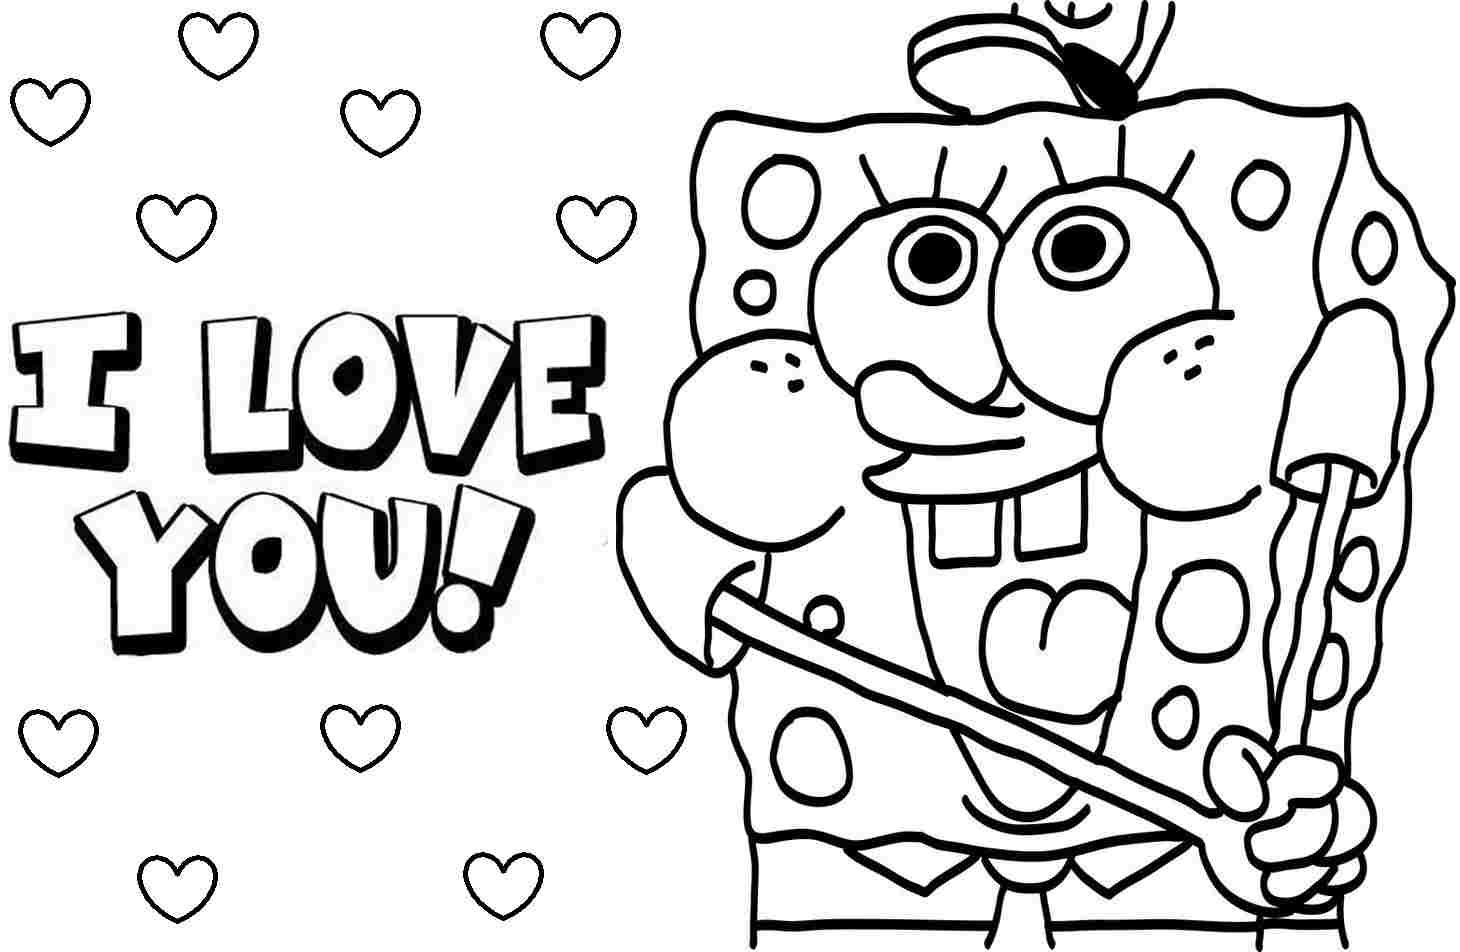 Printable Spongebob Coloring Pages Ideas Coloring Pages For Teenagers Printable Valentines Coloring Pages Love Coloring Pages